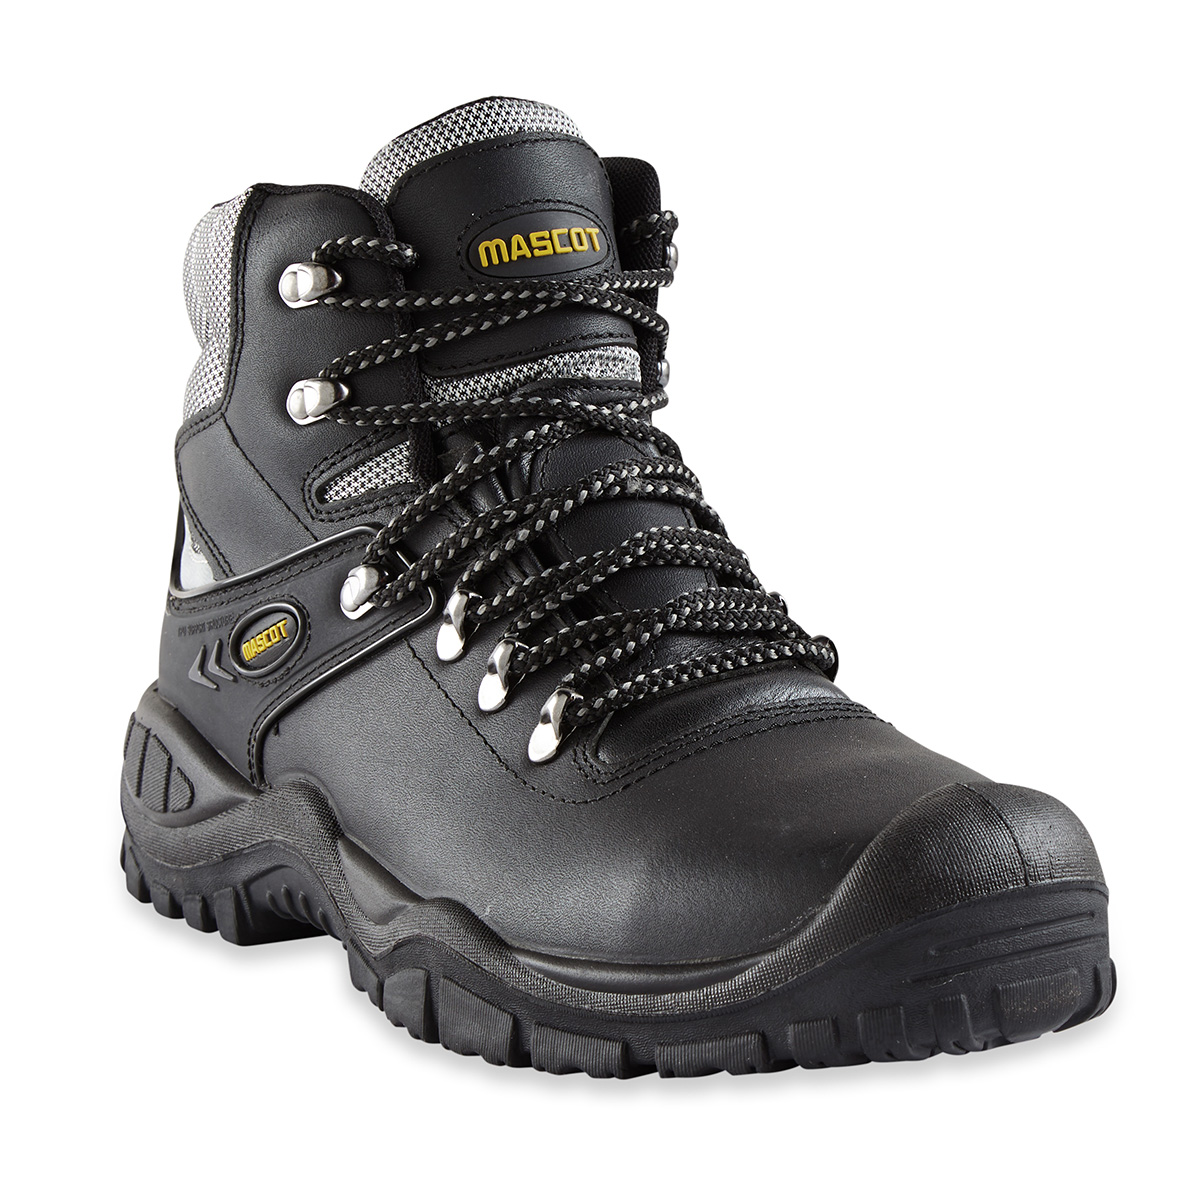 SF0074_STD_Elbrus_Buffalo_Leather_S3_Safety_Boots_Black